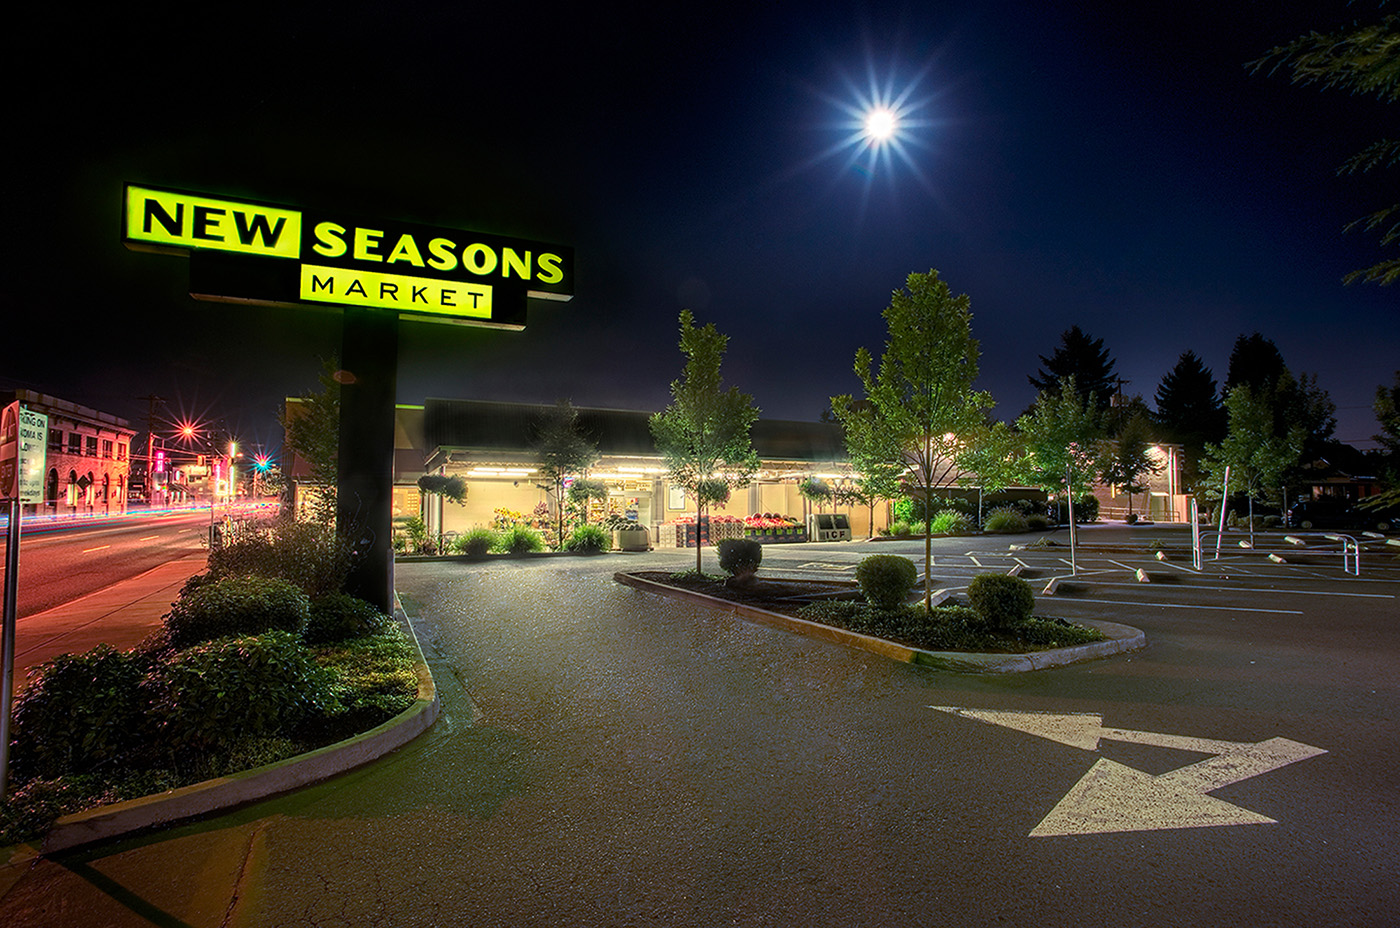 New Seasons Market, Portland, Oregon